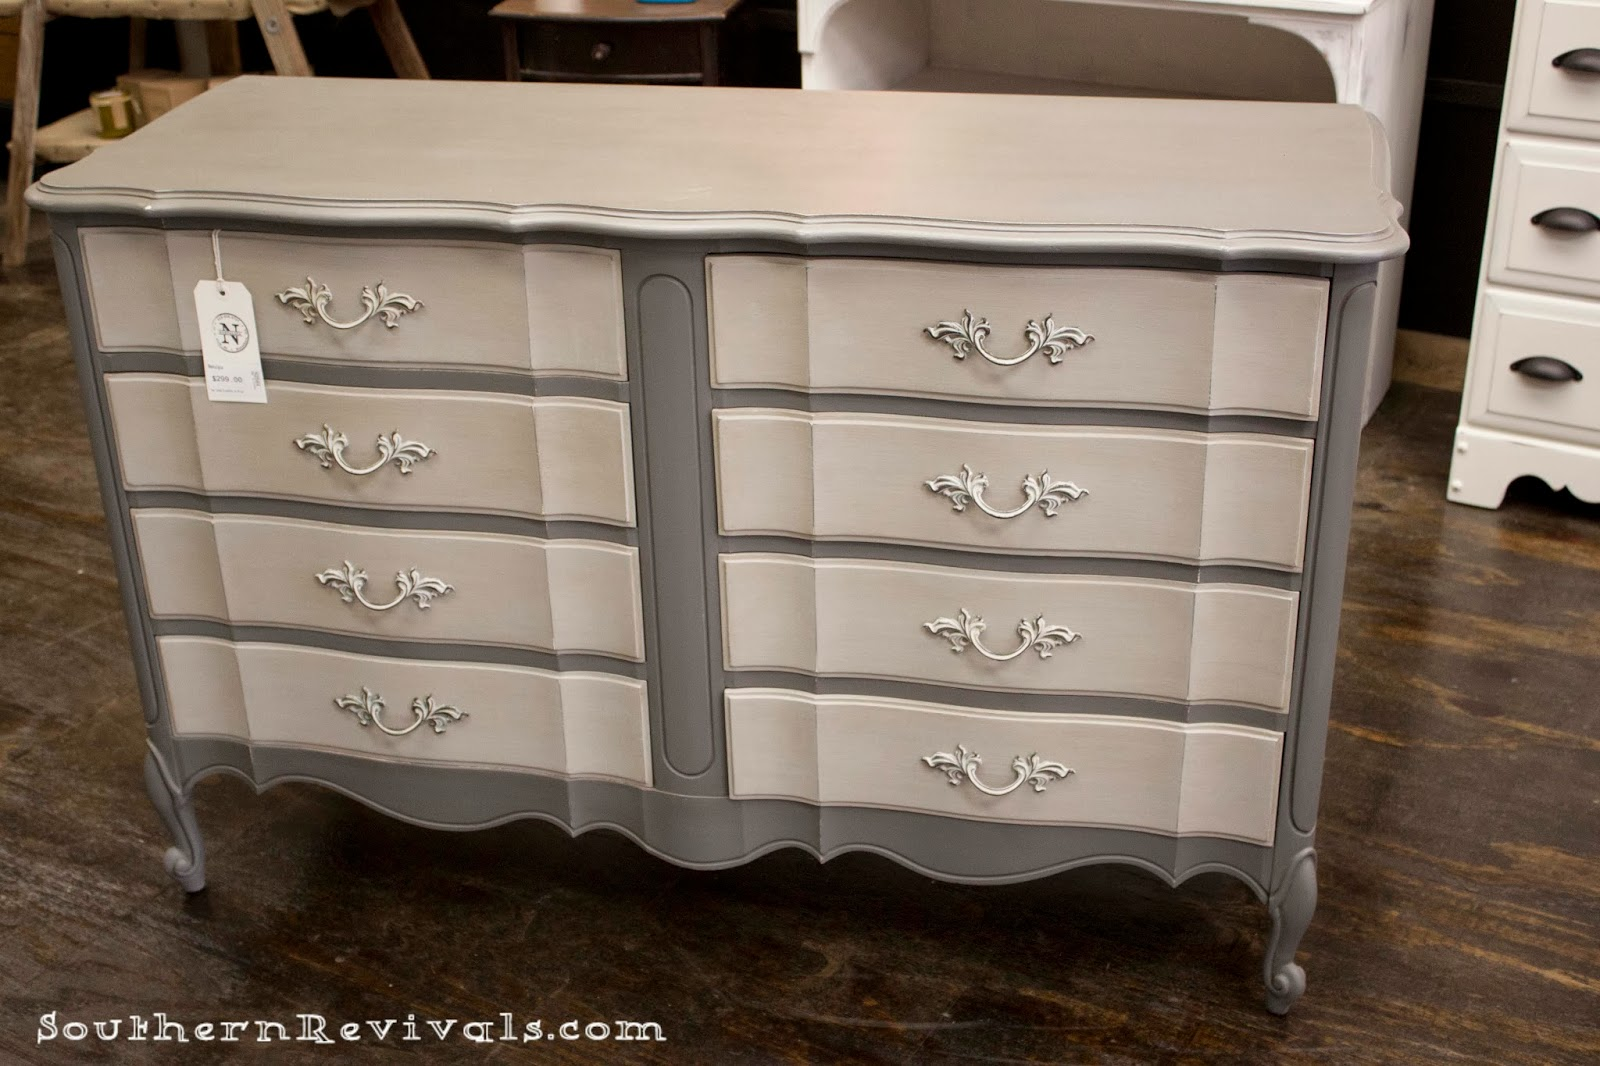 Incroyable Southern Revivals | French Provincial Chalk Painted Gray Dresser Redo